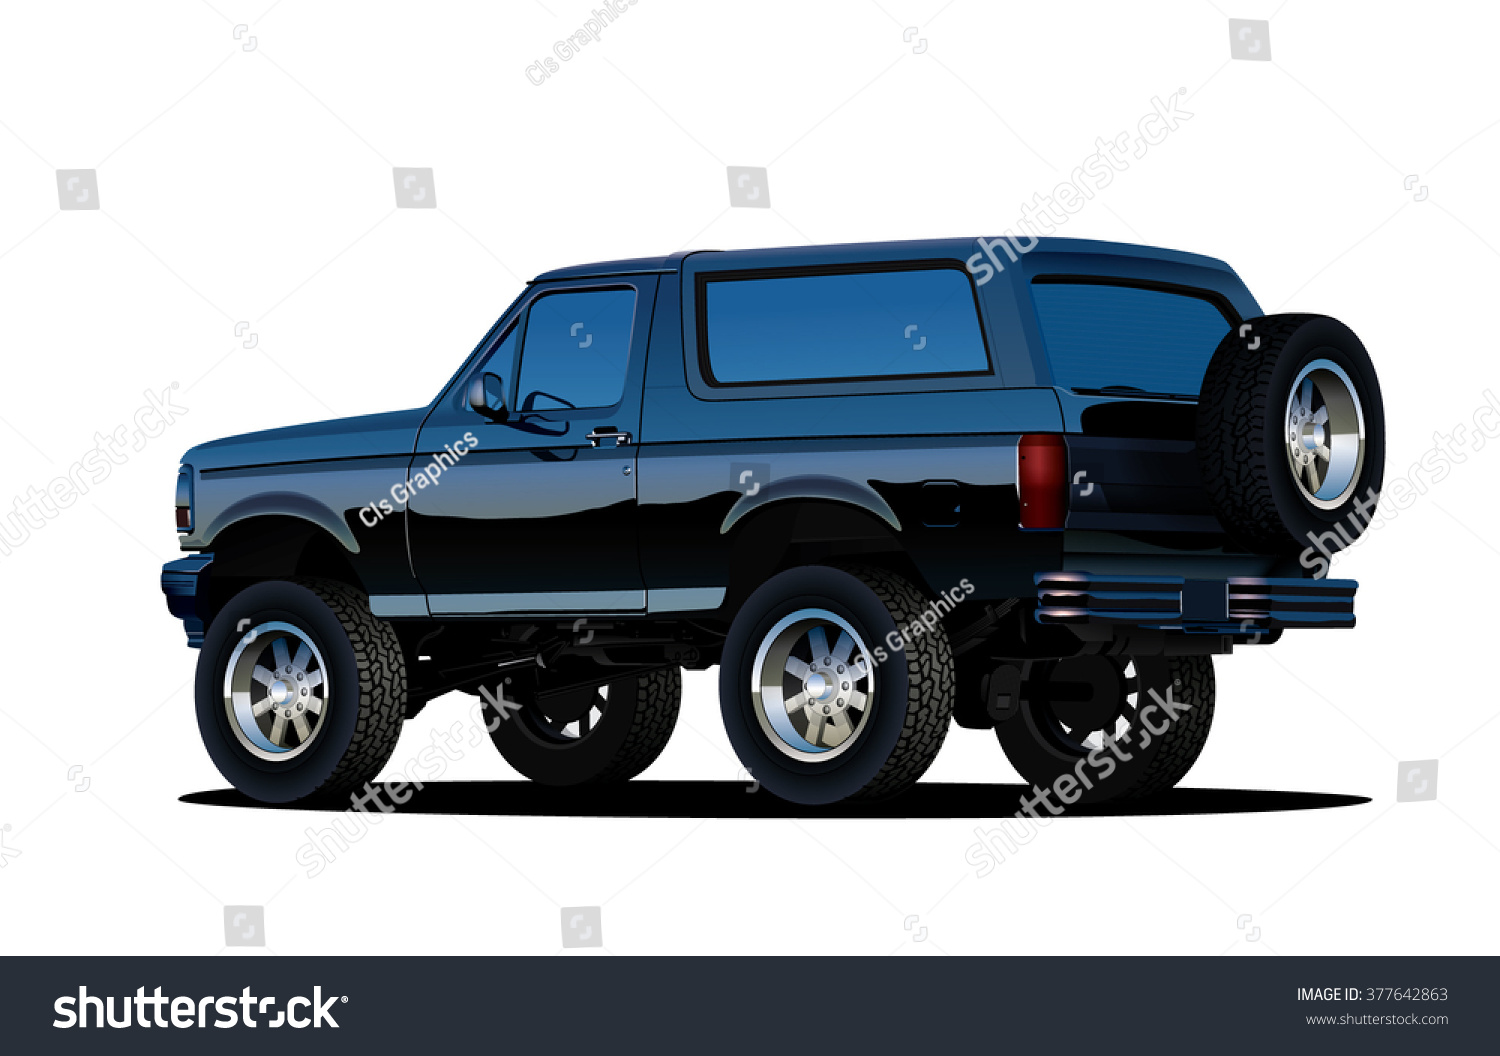 Offroad SUV Vehicle Vector EPS 10 Isolated Stock-Vektorgrafik ...